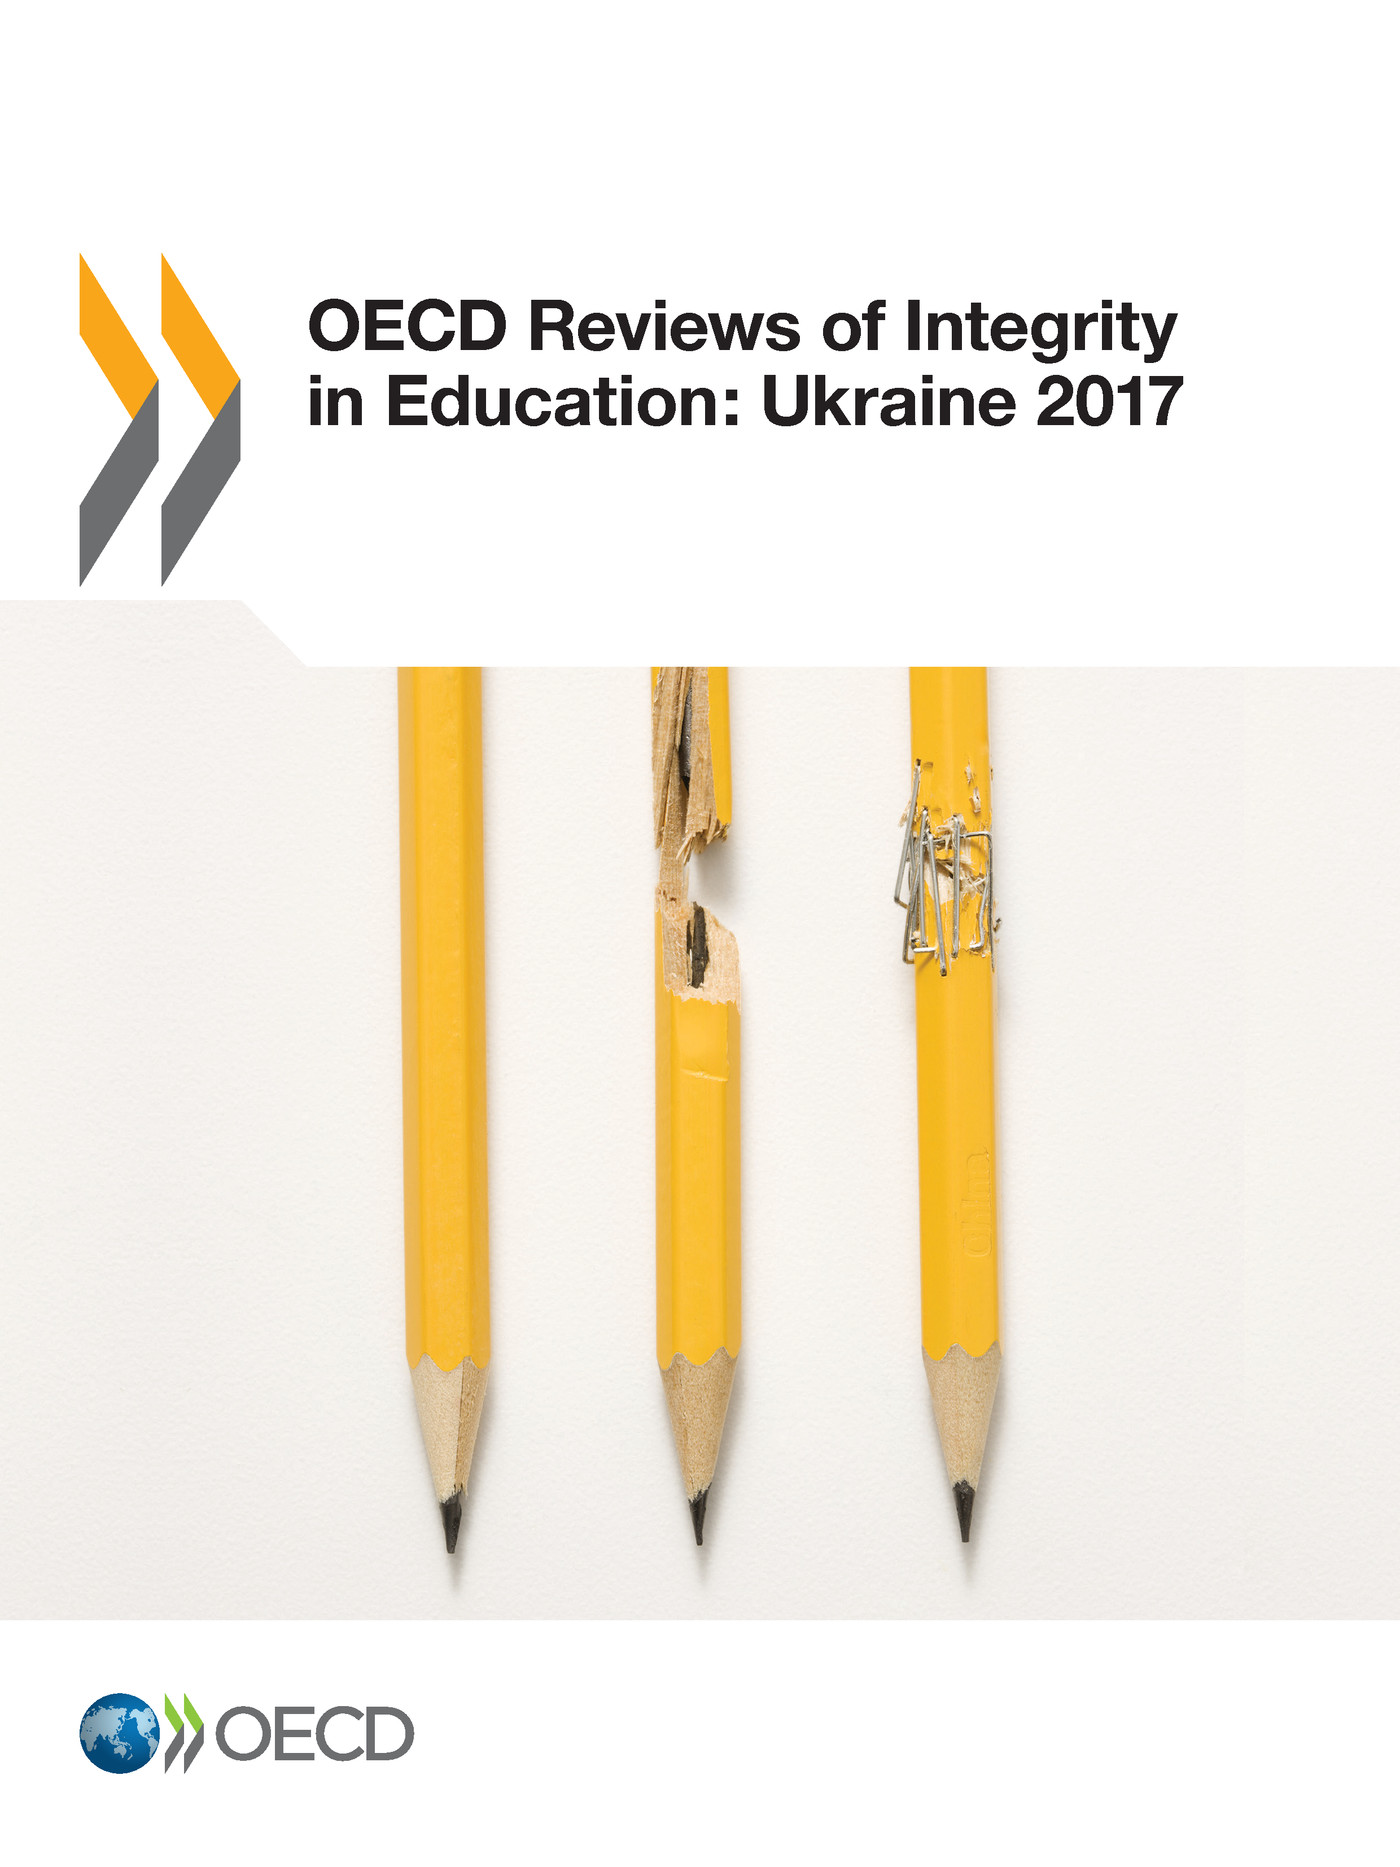 OECD Reviews of Integrity in Education: Ukraine 2017 De  Collectif - OCDE / OECD